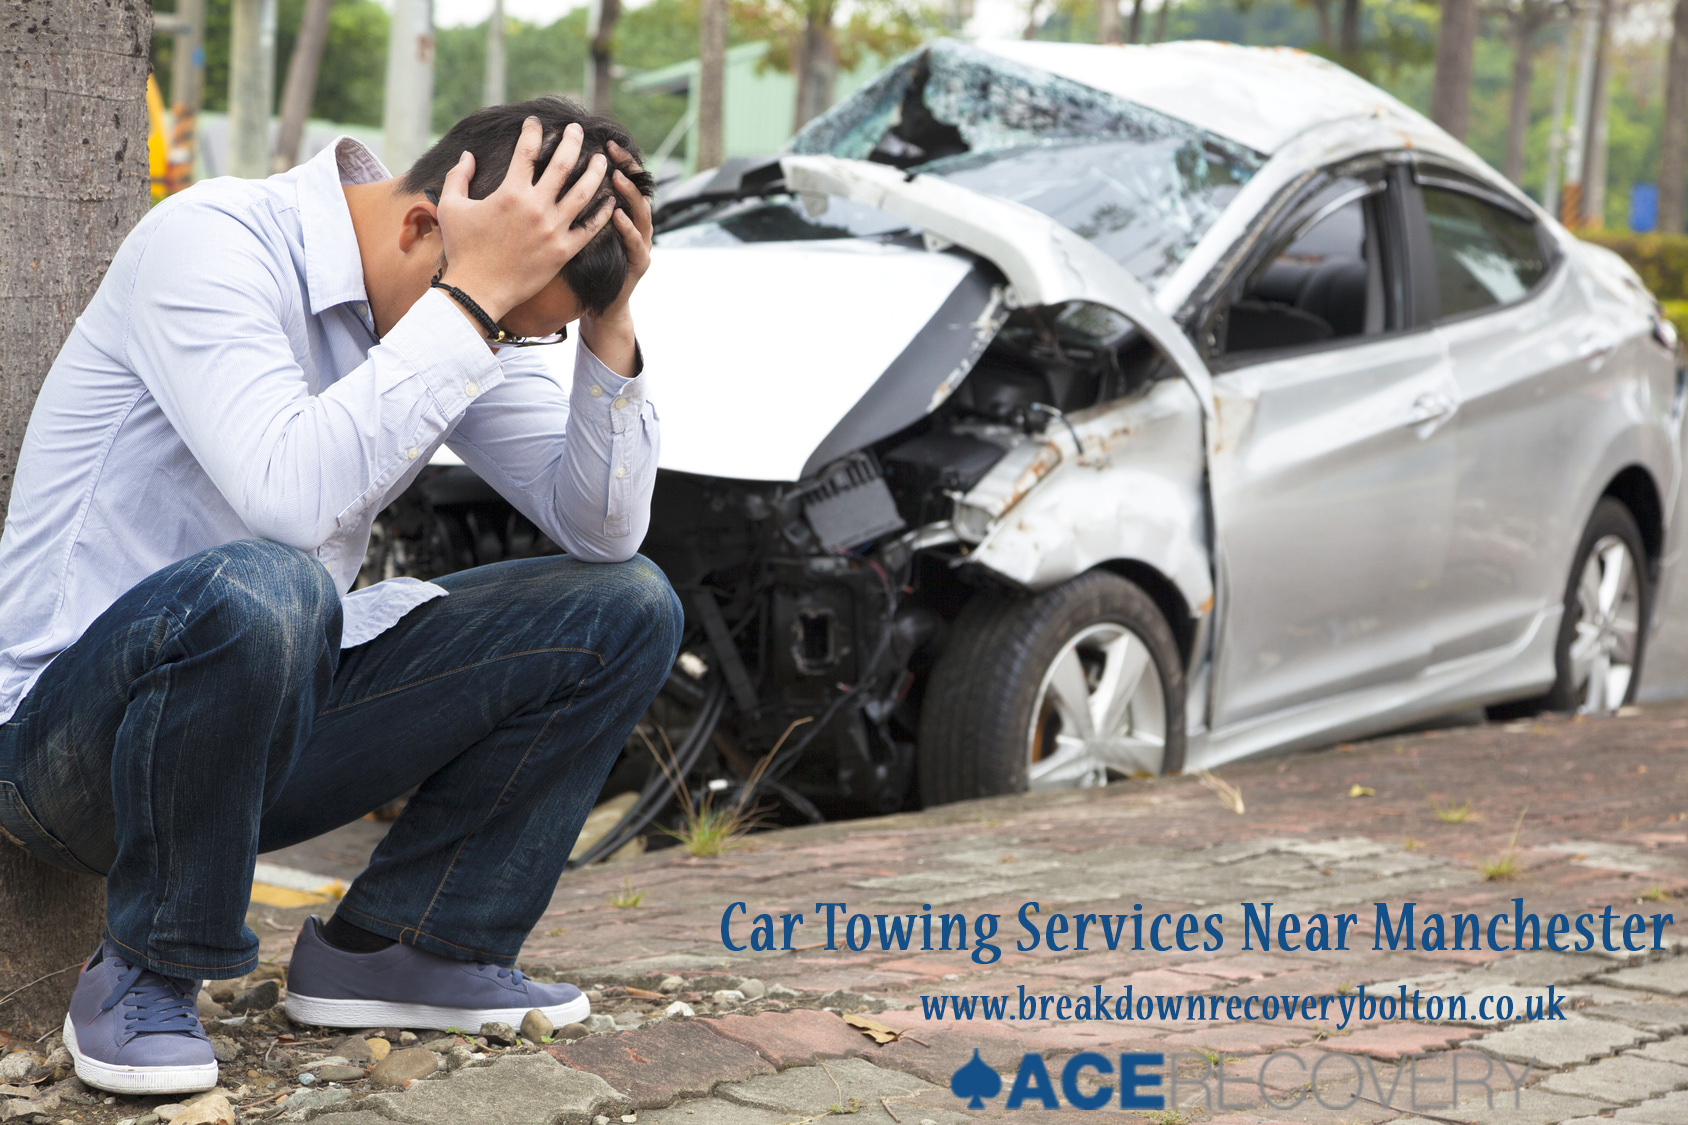 Car Accident Towing Services Near Manchester